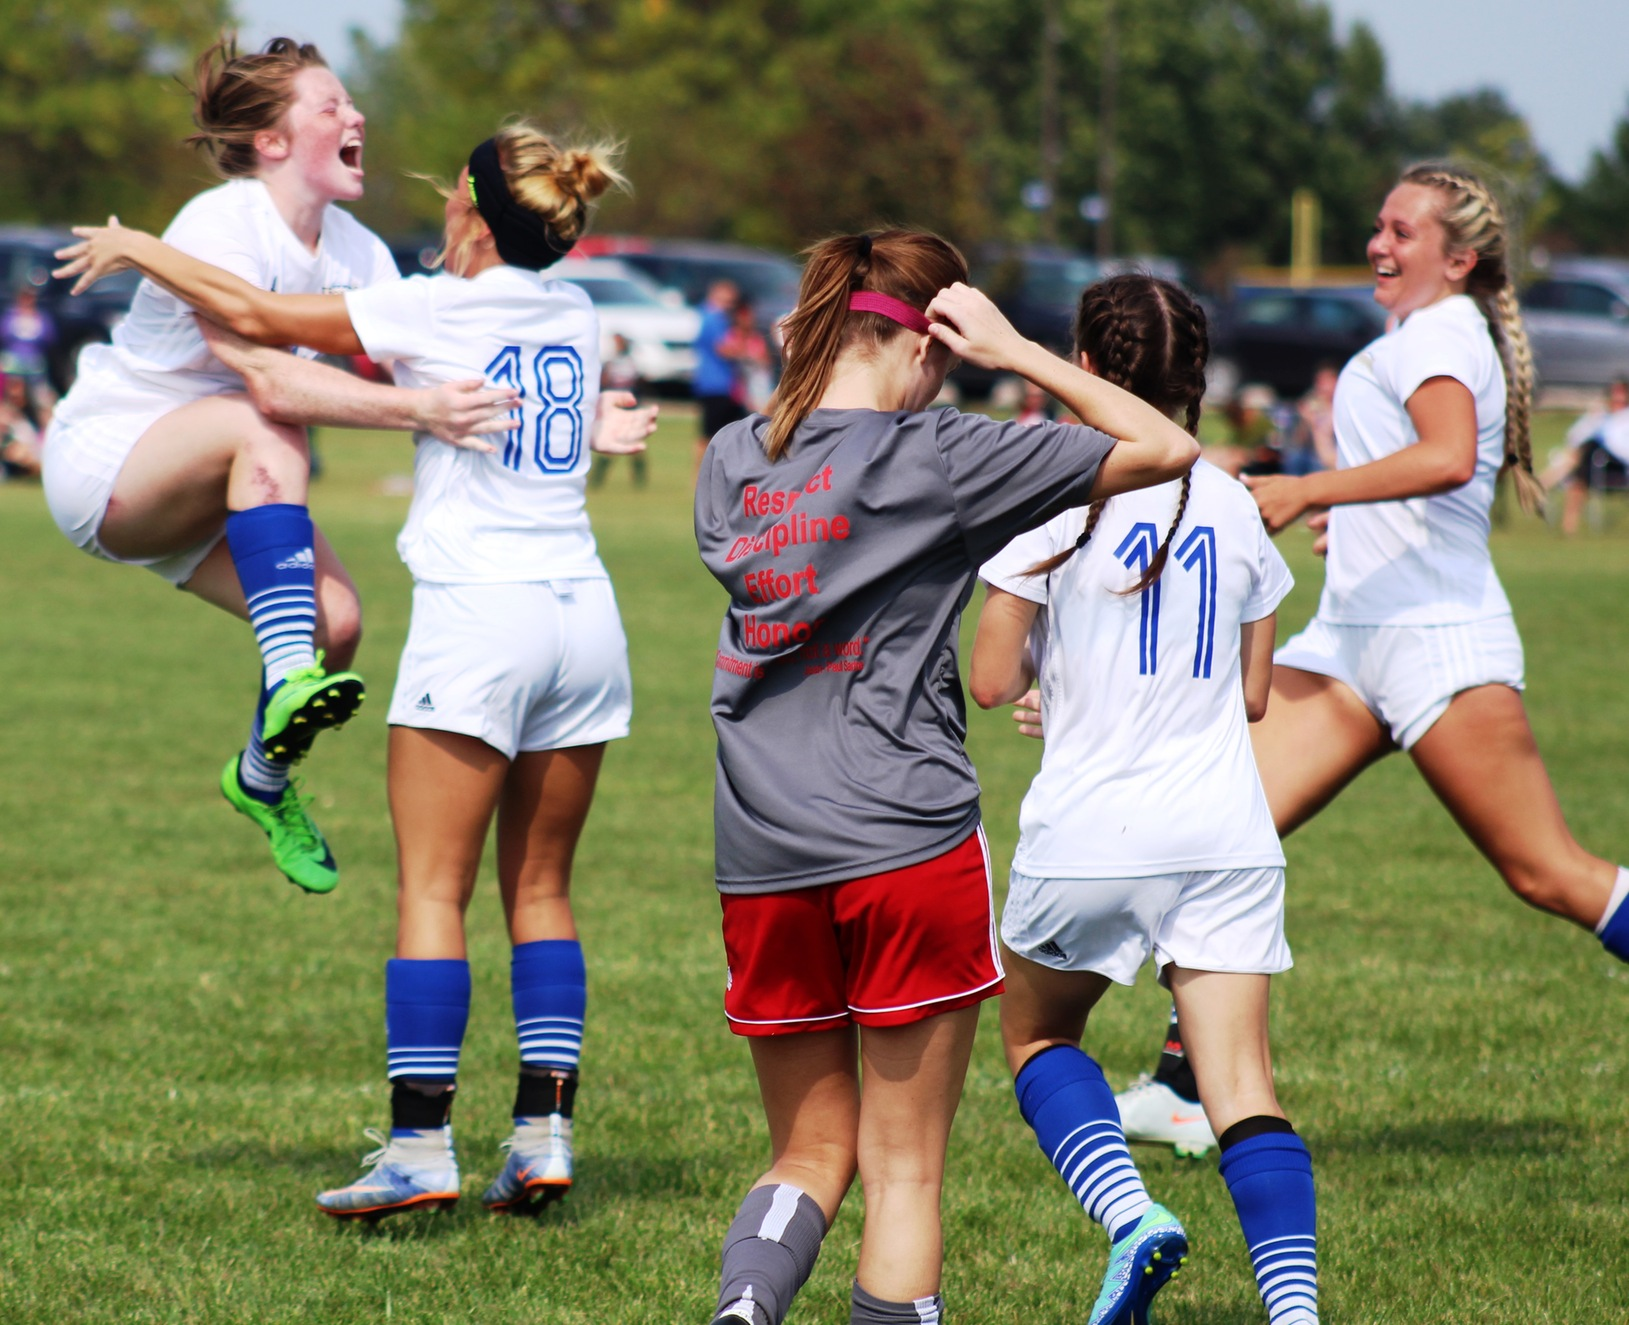 Emma Eden (in air) celebrates after scoring a goal off a header on a corner kick in first half of Sunday's match.